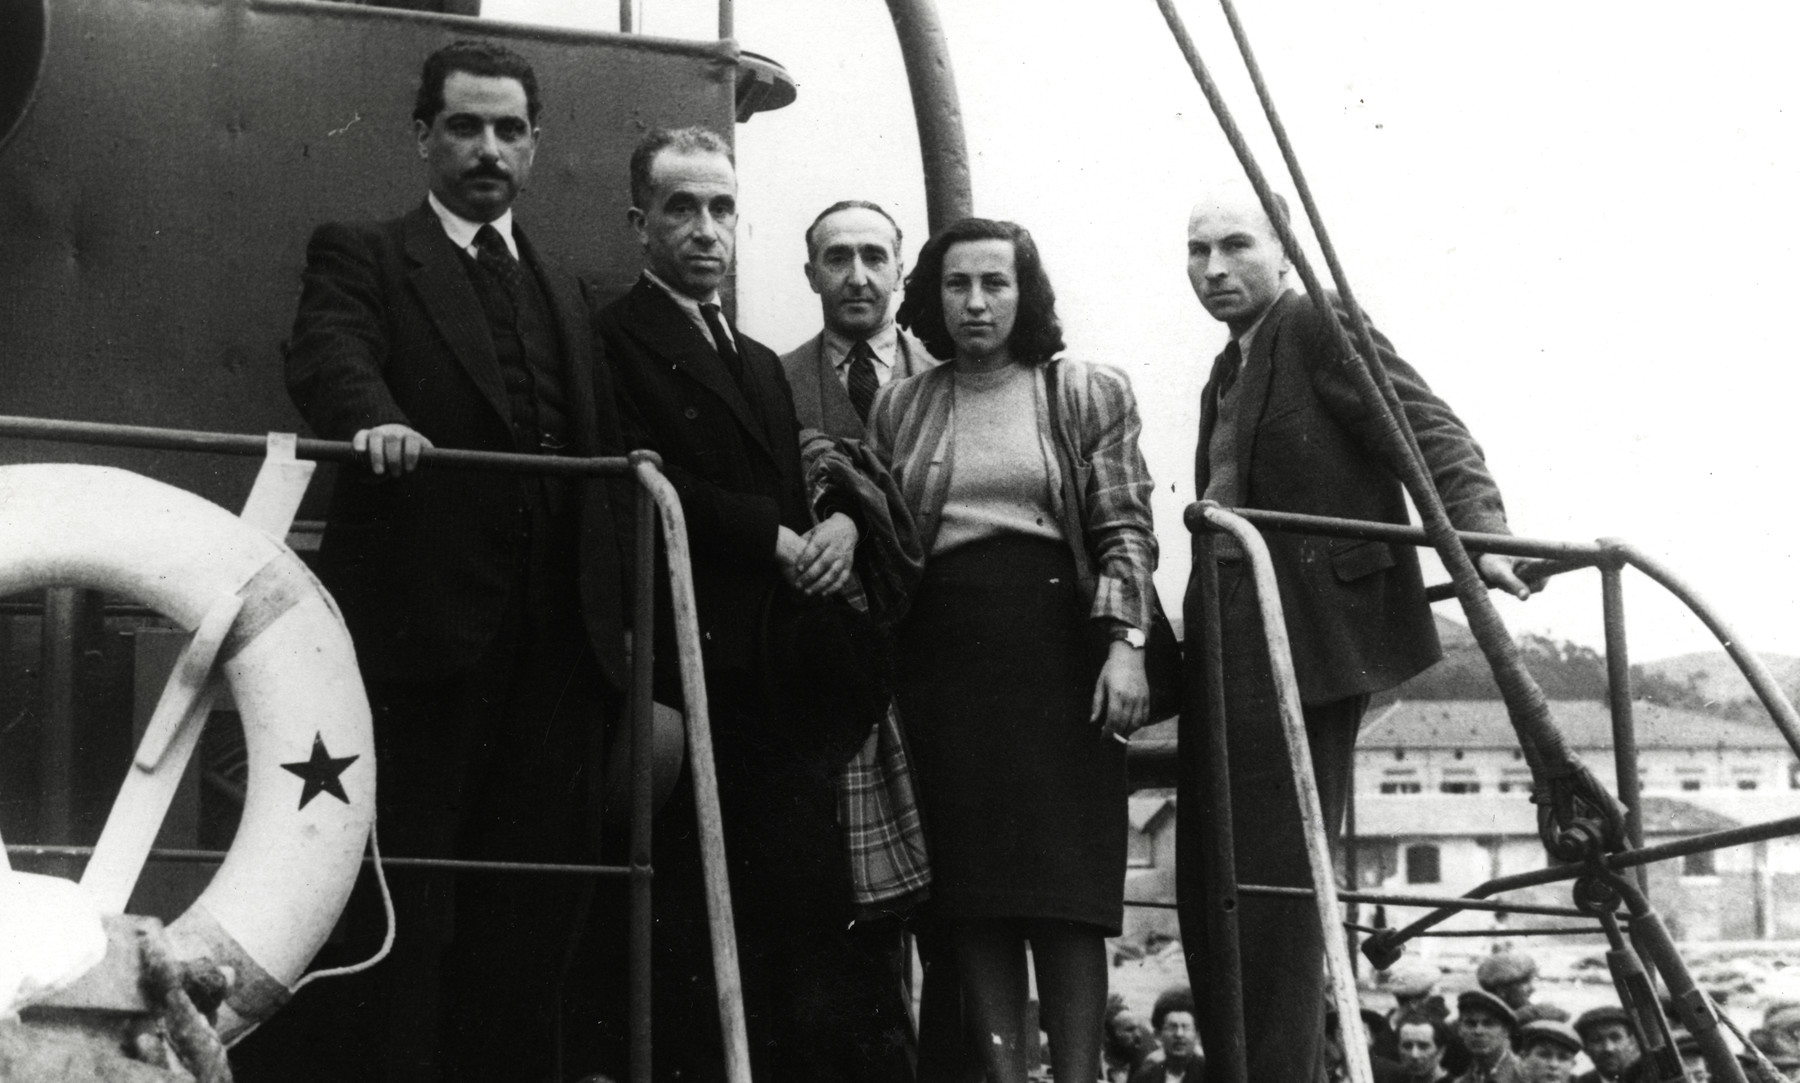 Jewish displaced persons or crew members pose on board the Eliyahu Golomb in La Spezia harbor.